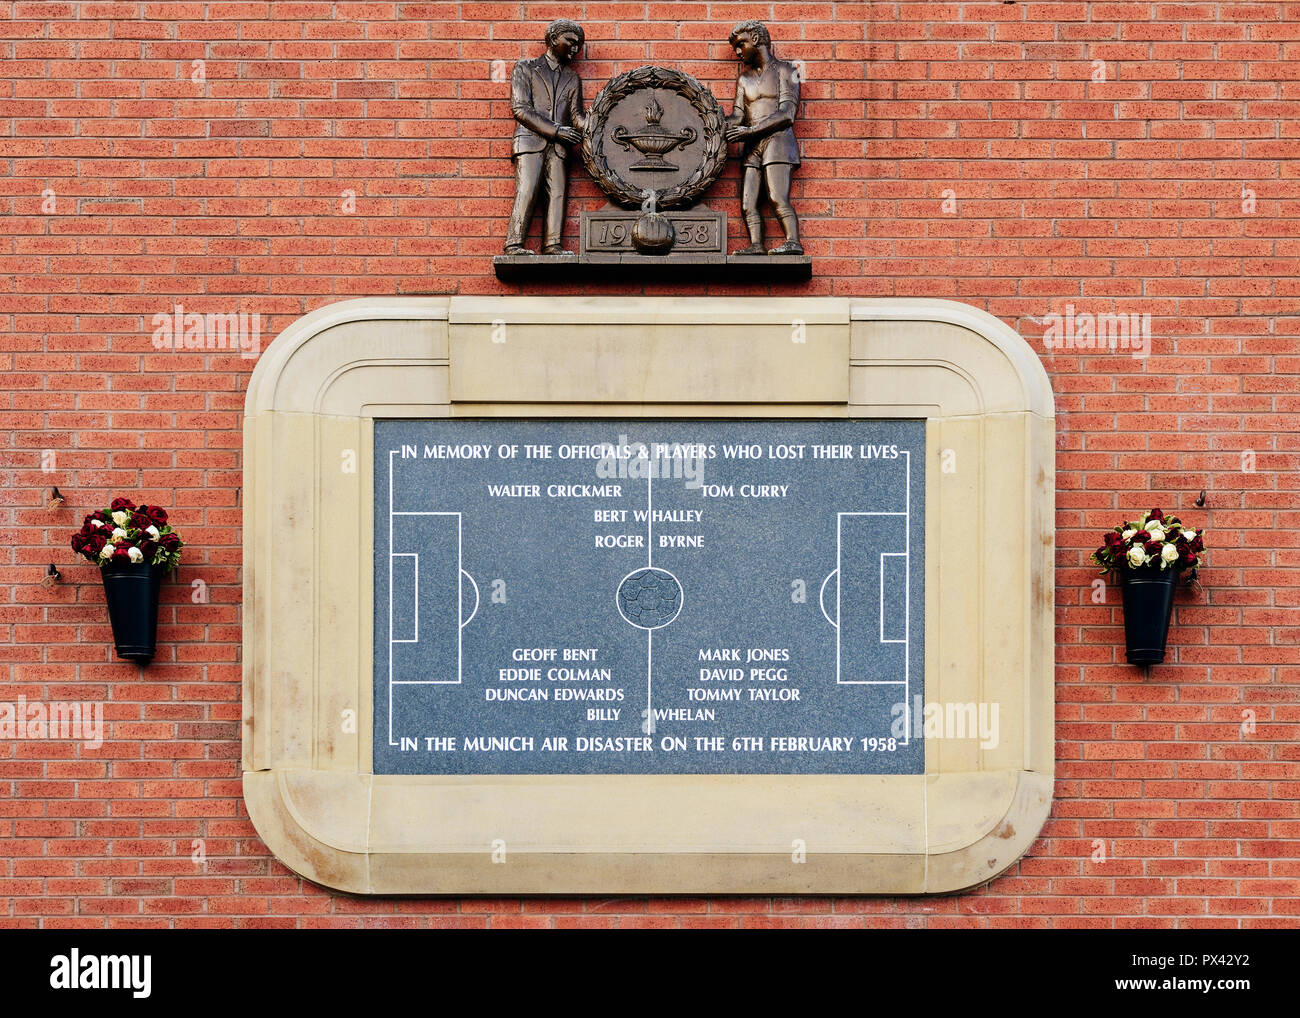 Munich Air Crash Memorial, Old Trafford, Manchester, UK - Stock Image